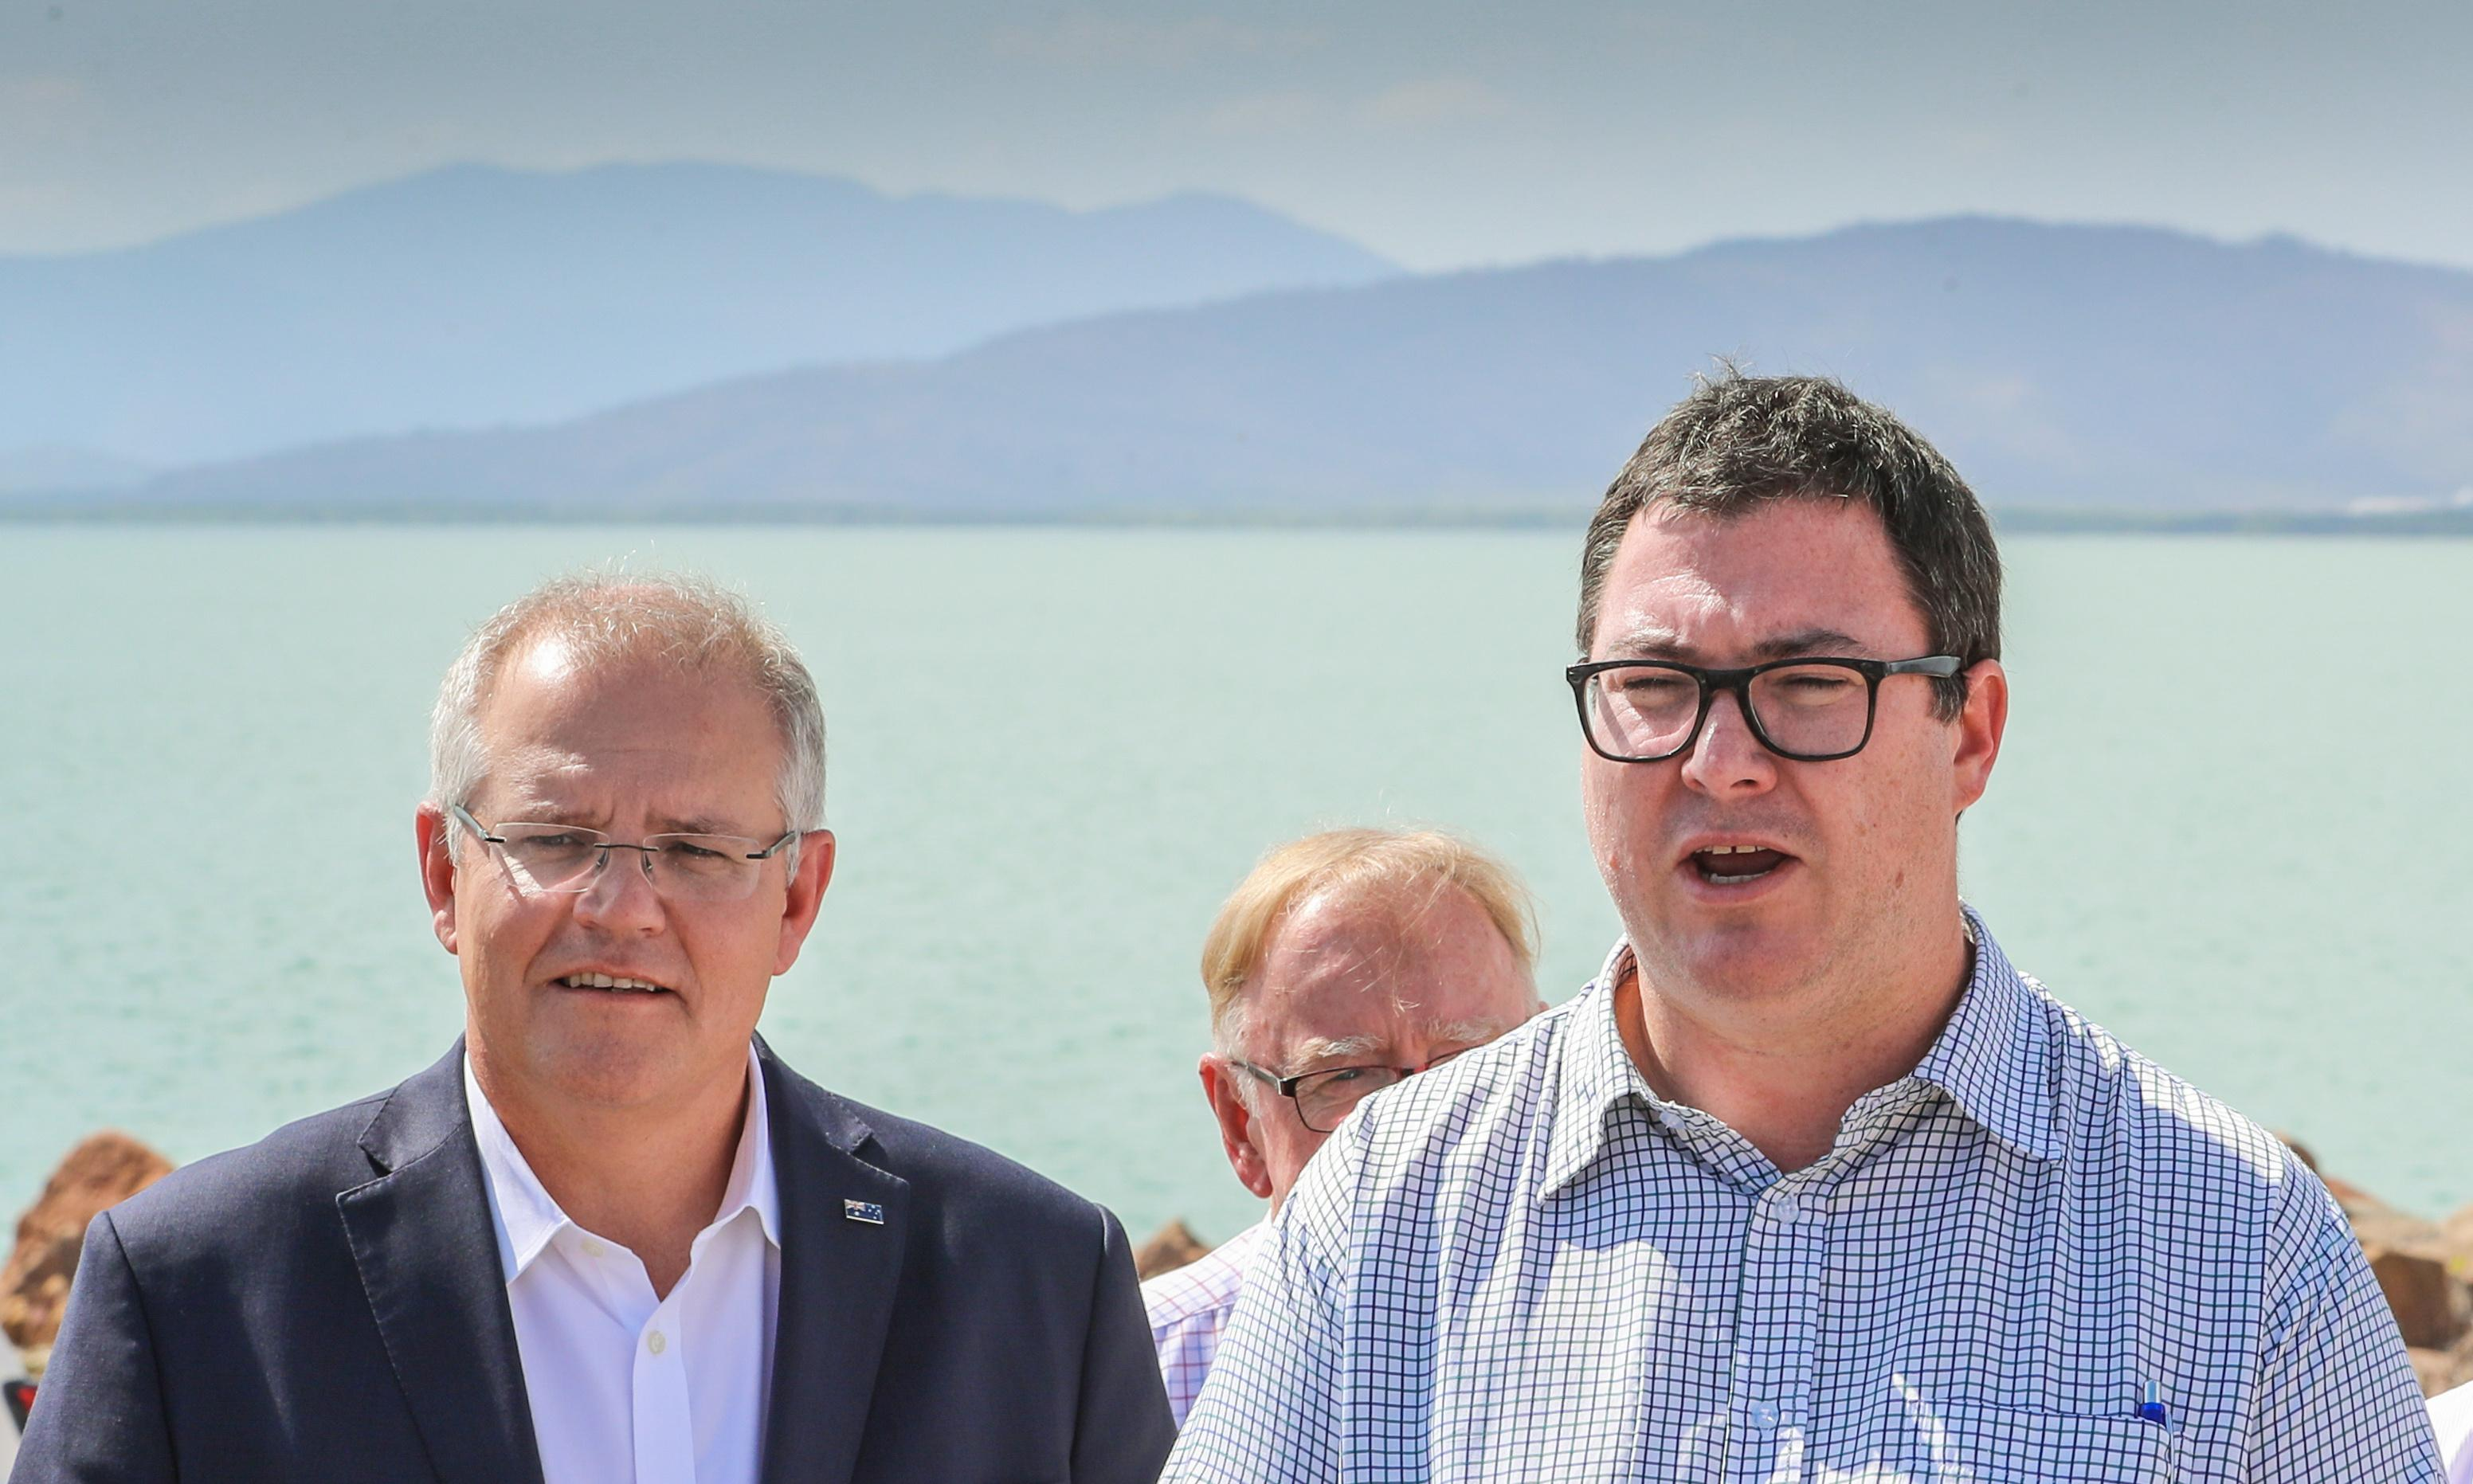 The big swing to George Christensen should be where the lesson for the election is